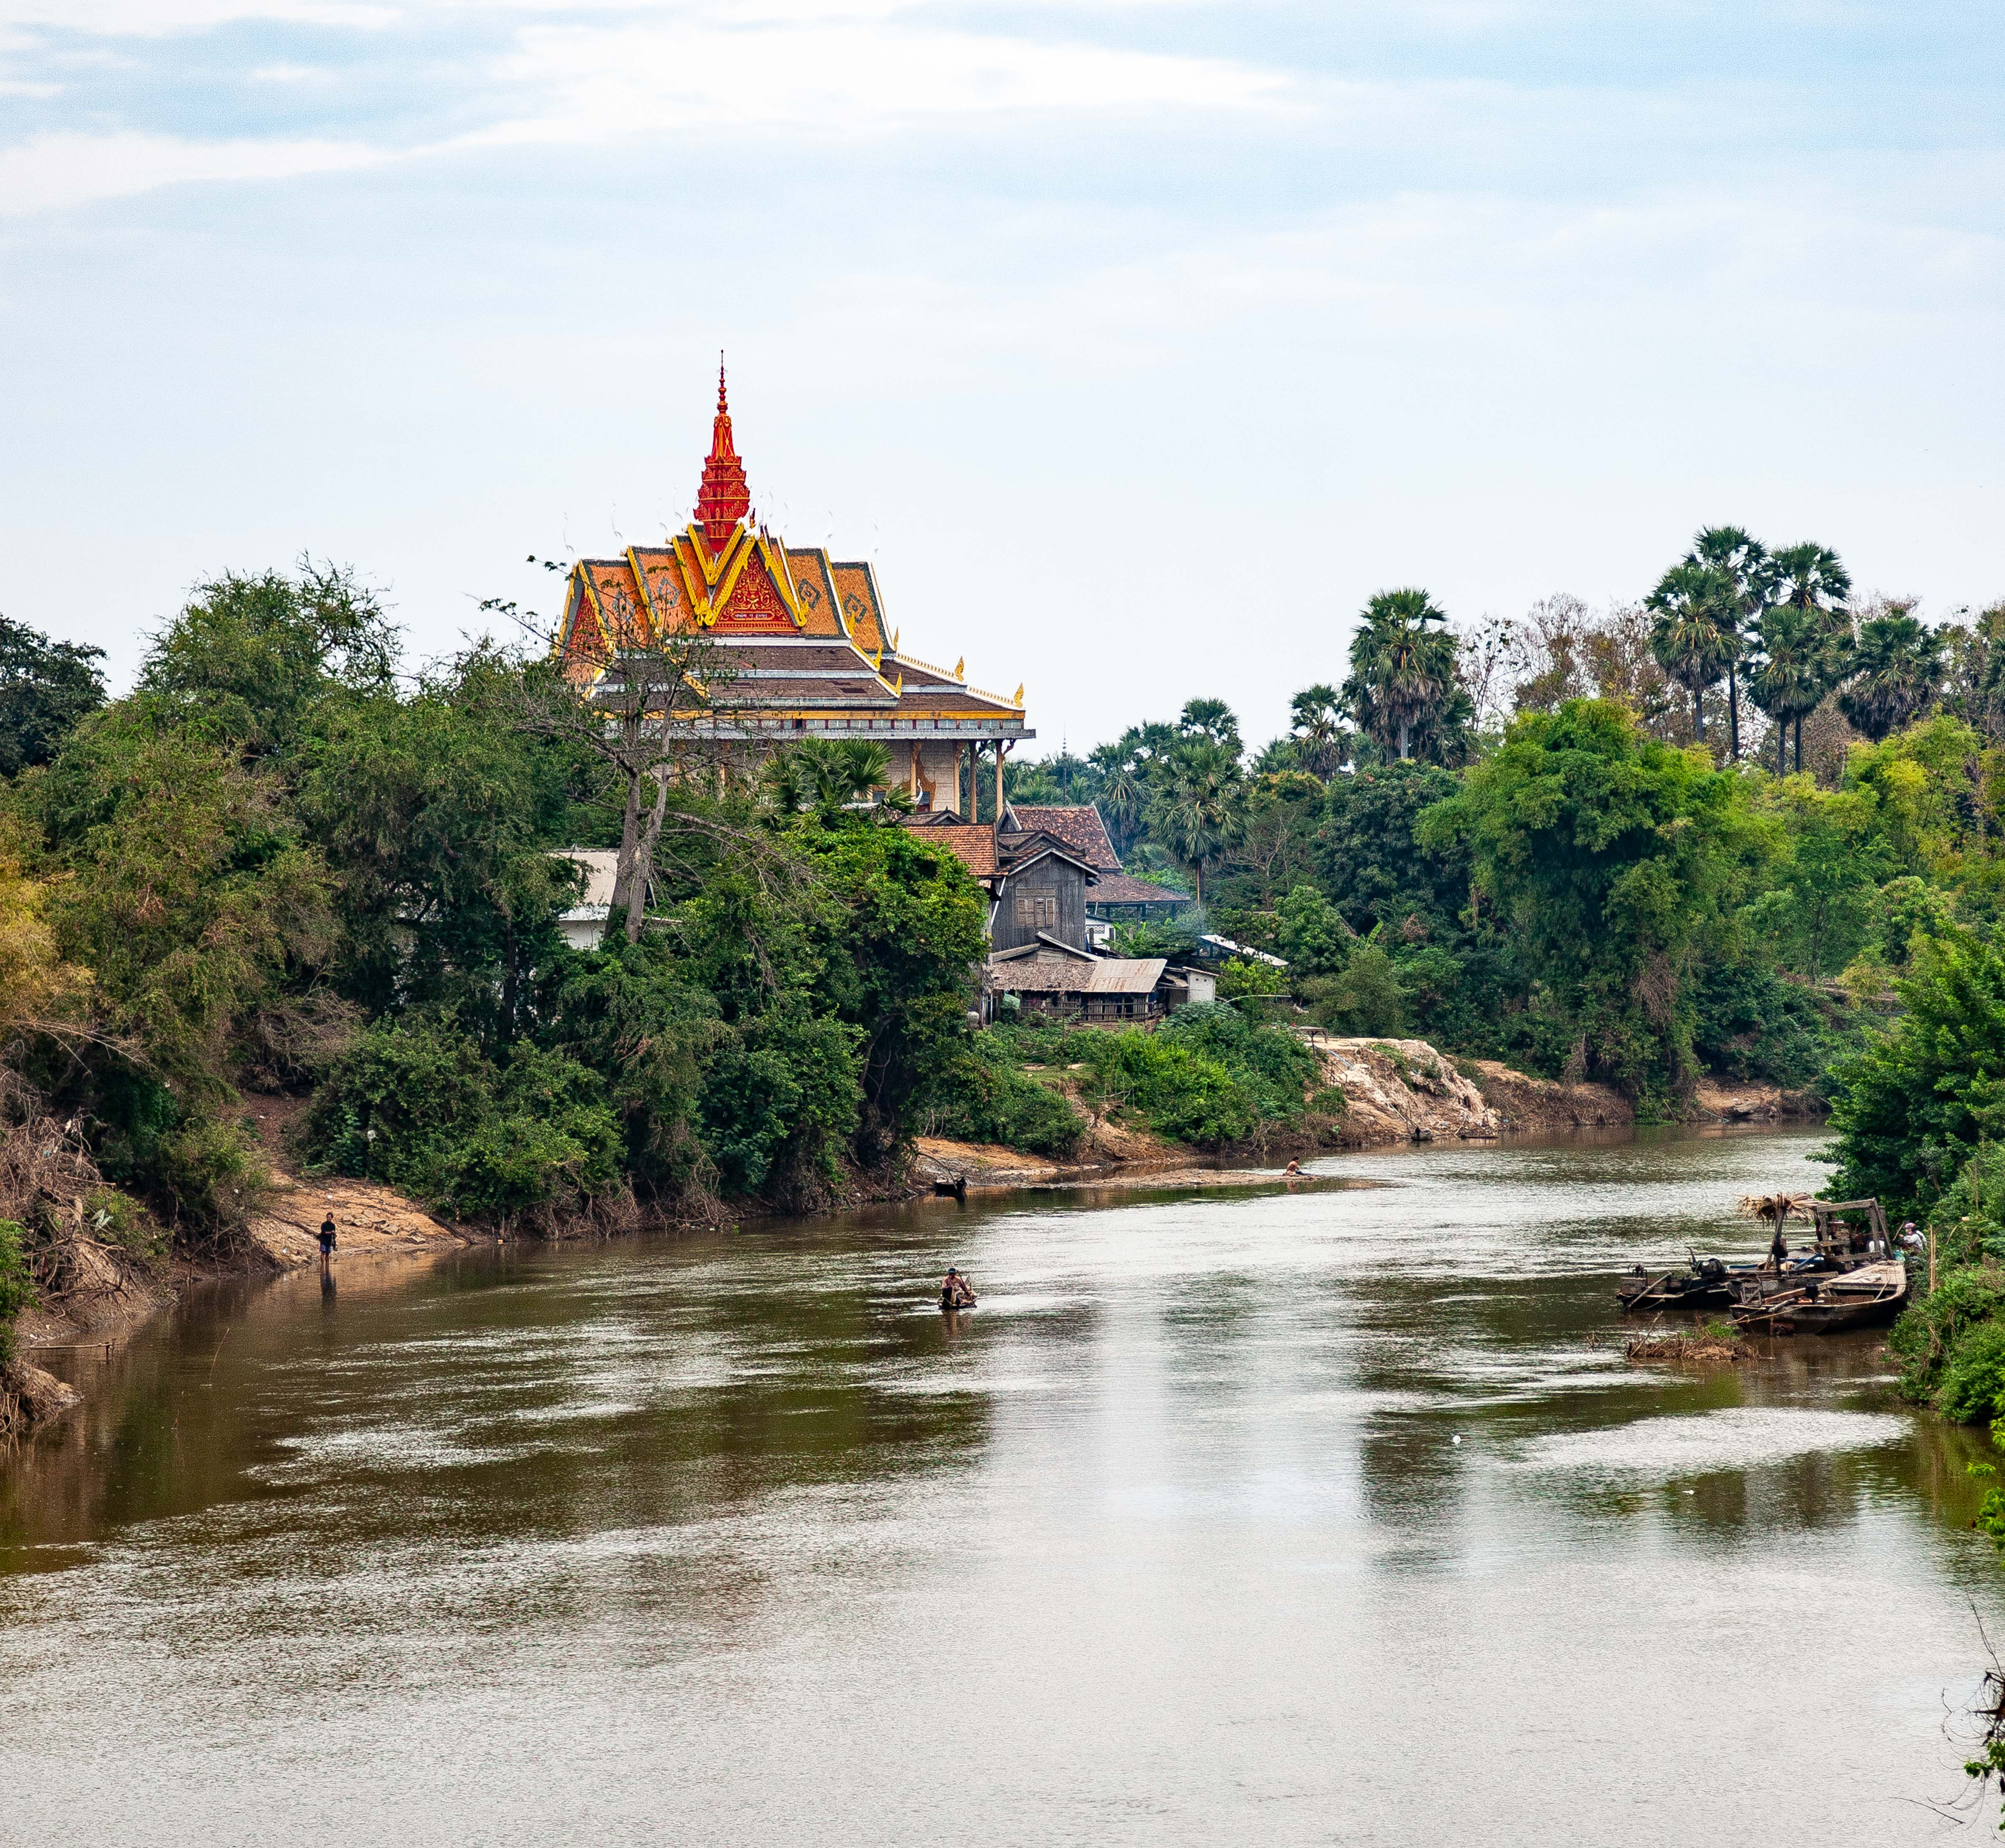 Cambodia, Kampong Thum Prov, River Temple, 2010, IMG 5446